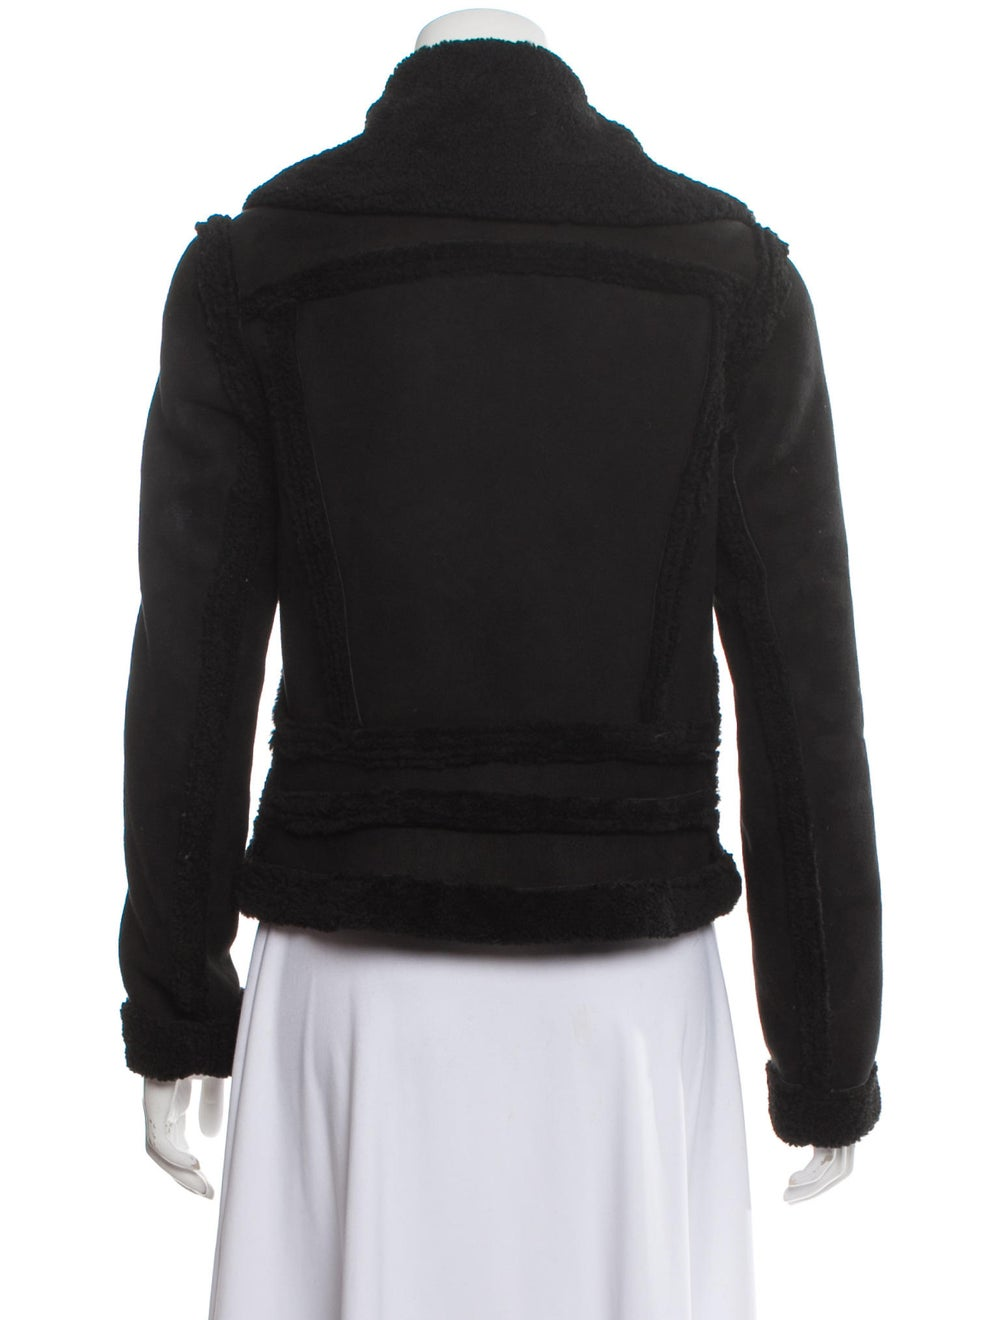 L'Agence Shearling Jacket Black - image 3